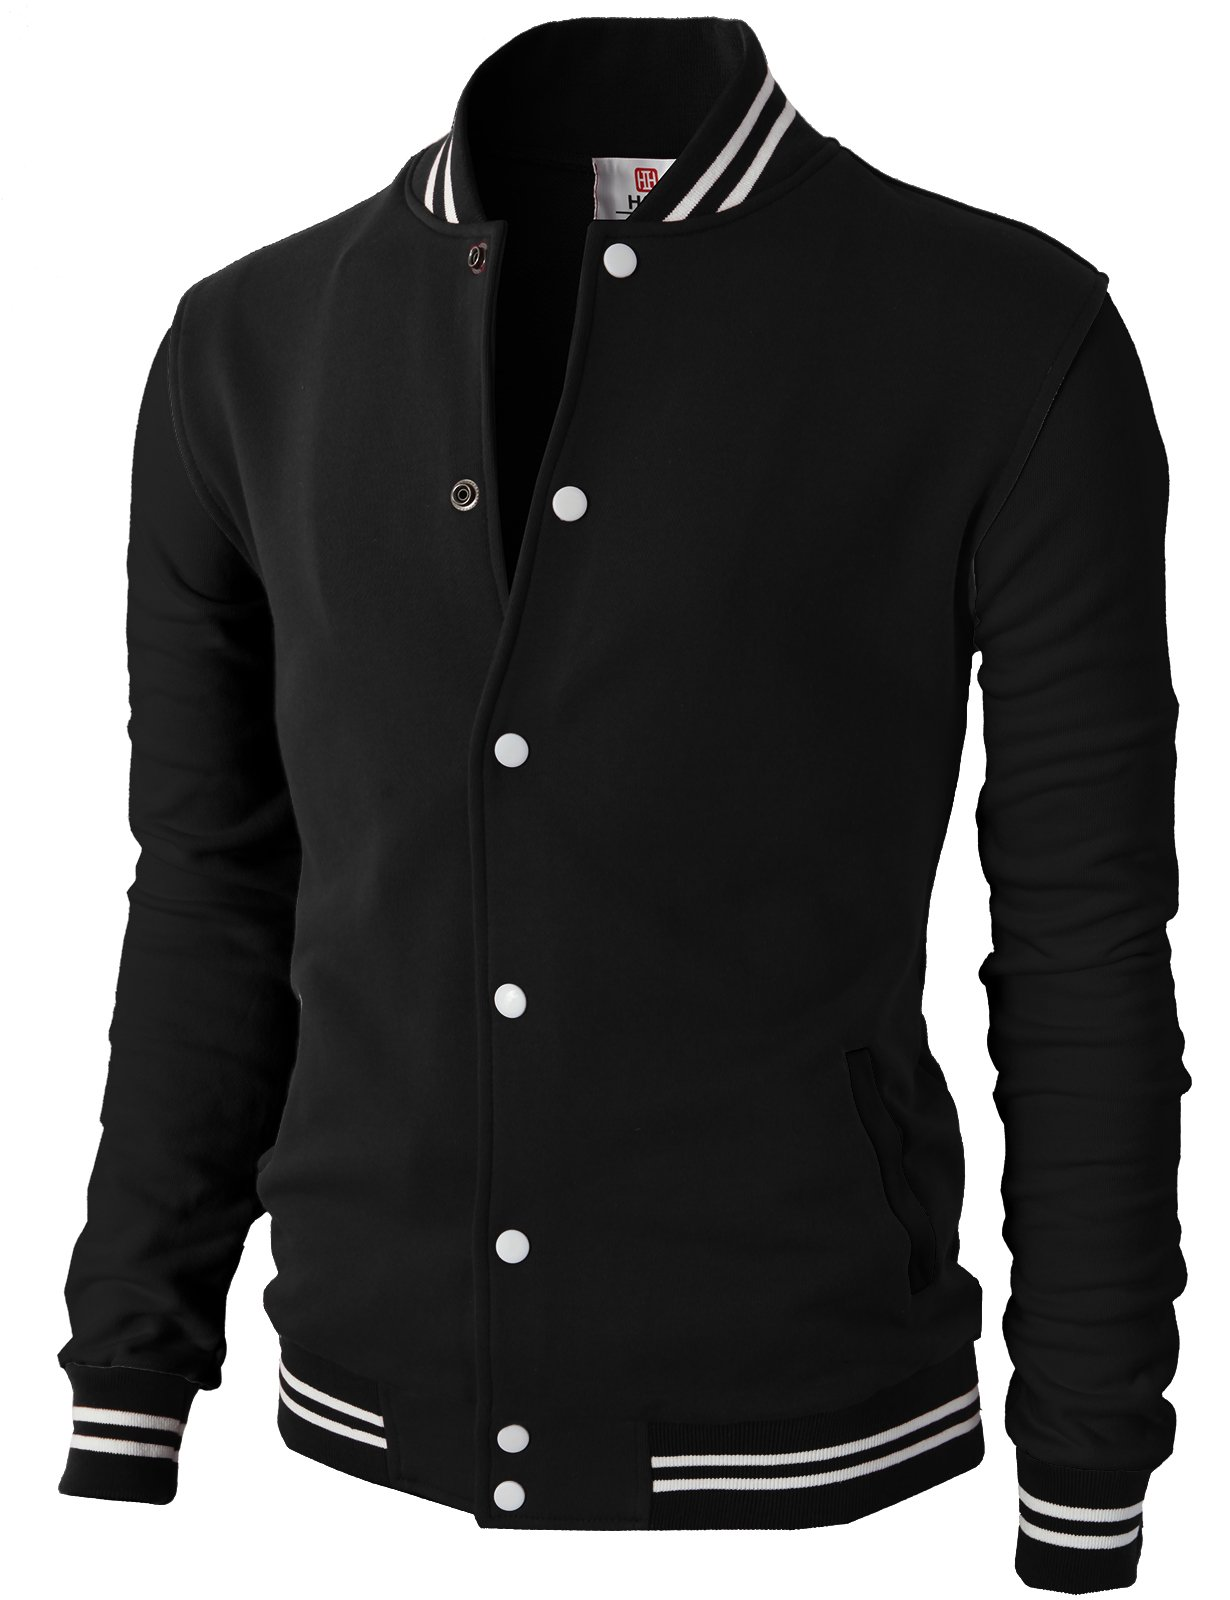 H2H Mens Premium Slim Fit Bomber Button Front Cotton Lightweight Varsity Baseball Jacket JetBlack US XL/Asia 2XL (CMOJA083) by H2H